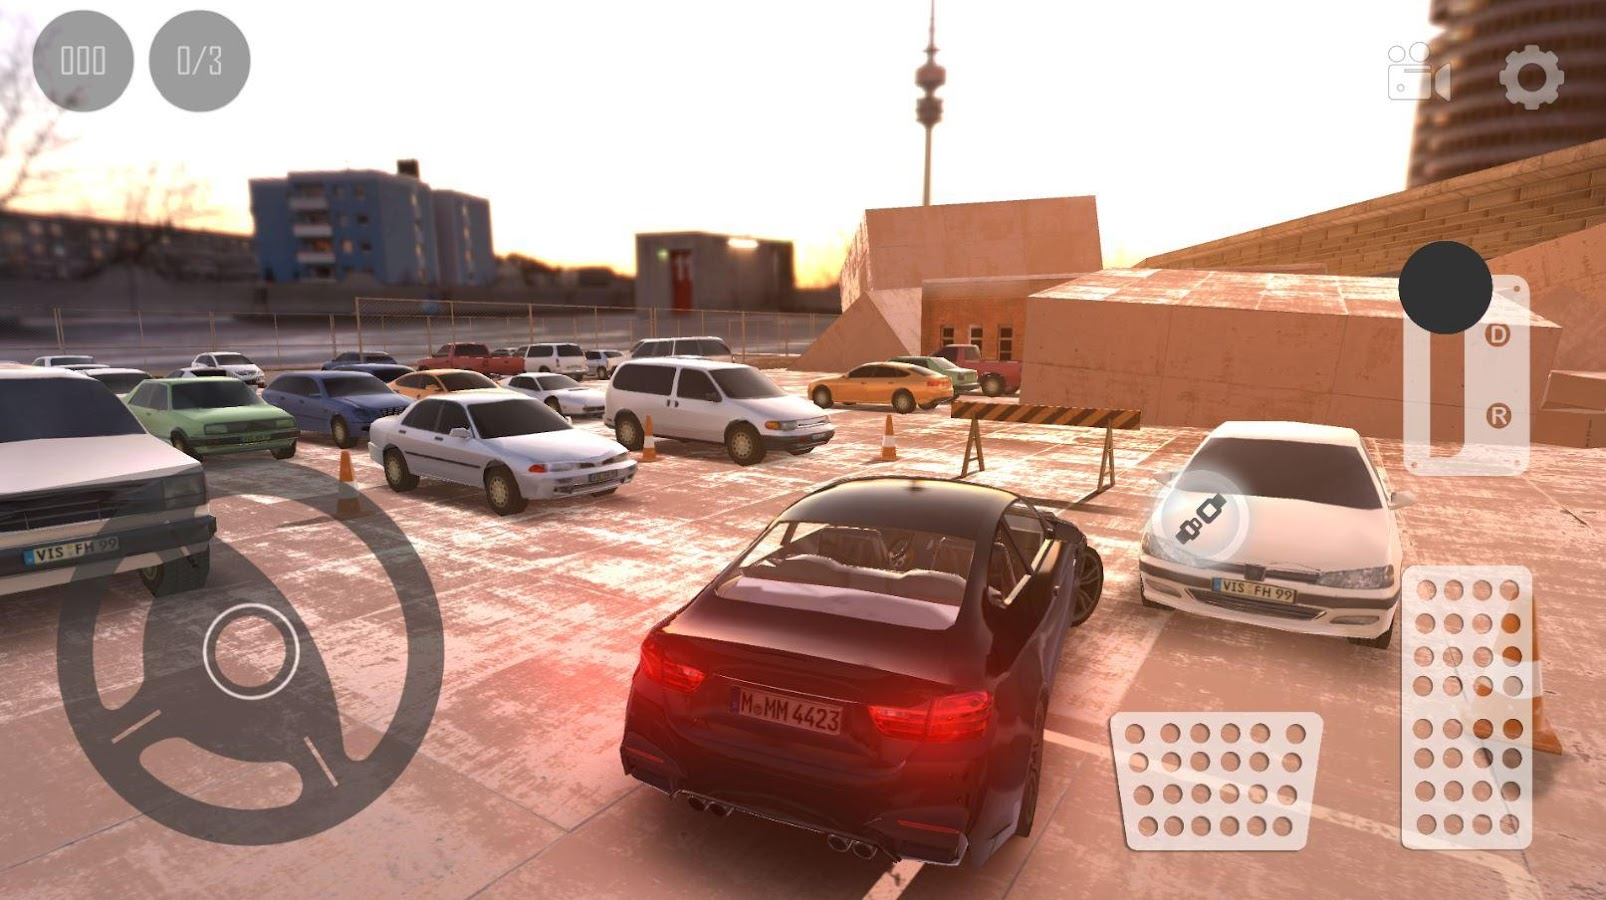 Real Car Parking 2017 Street 3D Screenshot 3